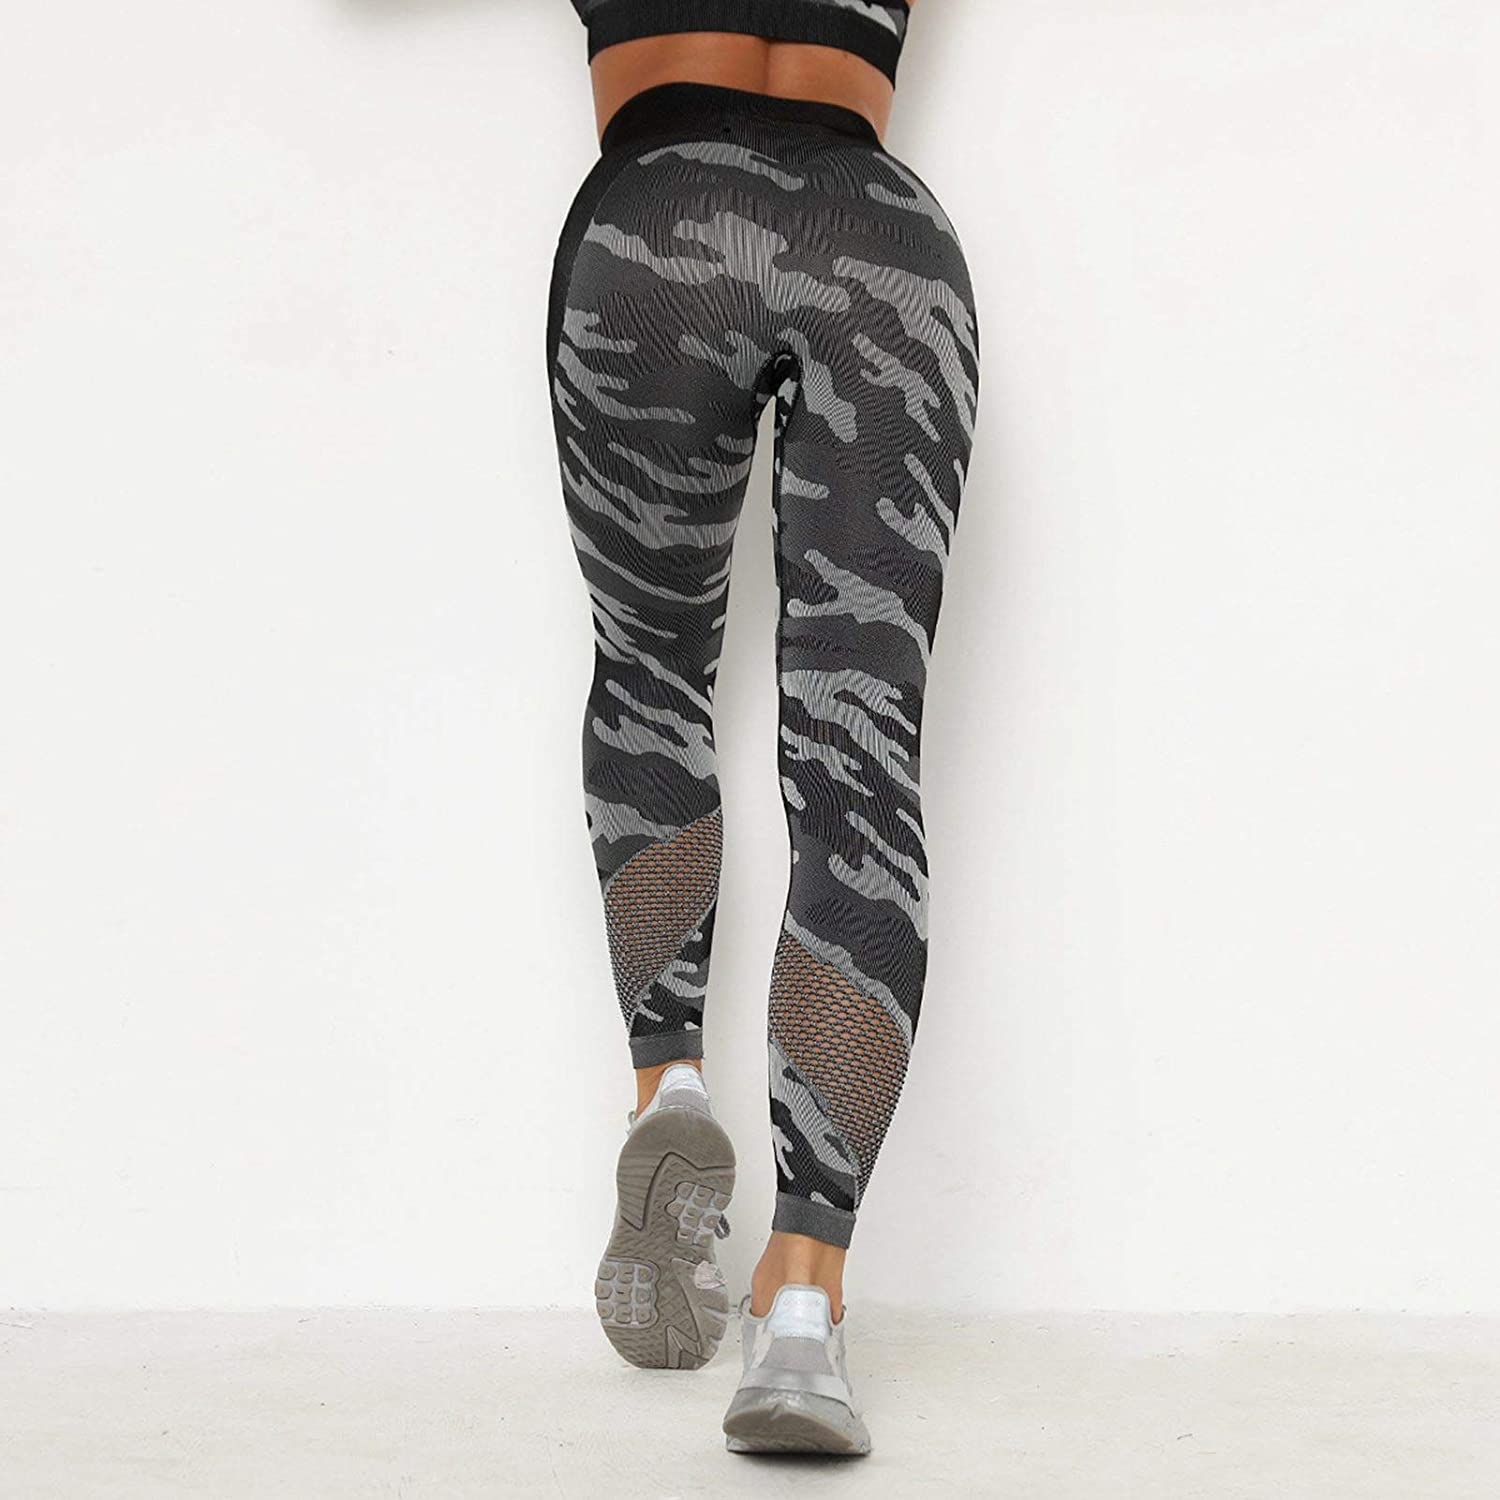 SUSSURRO Women Leggings Camo High Waisted Workout Pants Mesh Seamless Athletic Legging